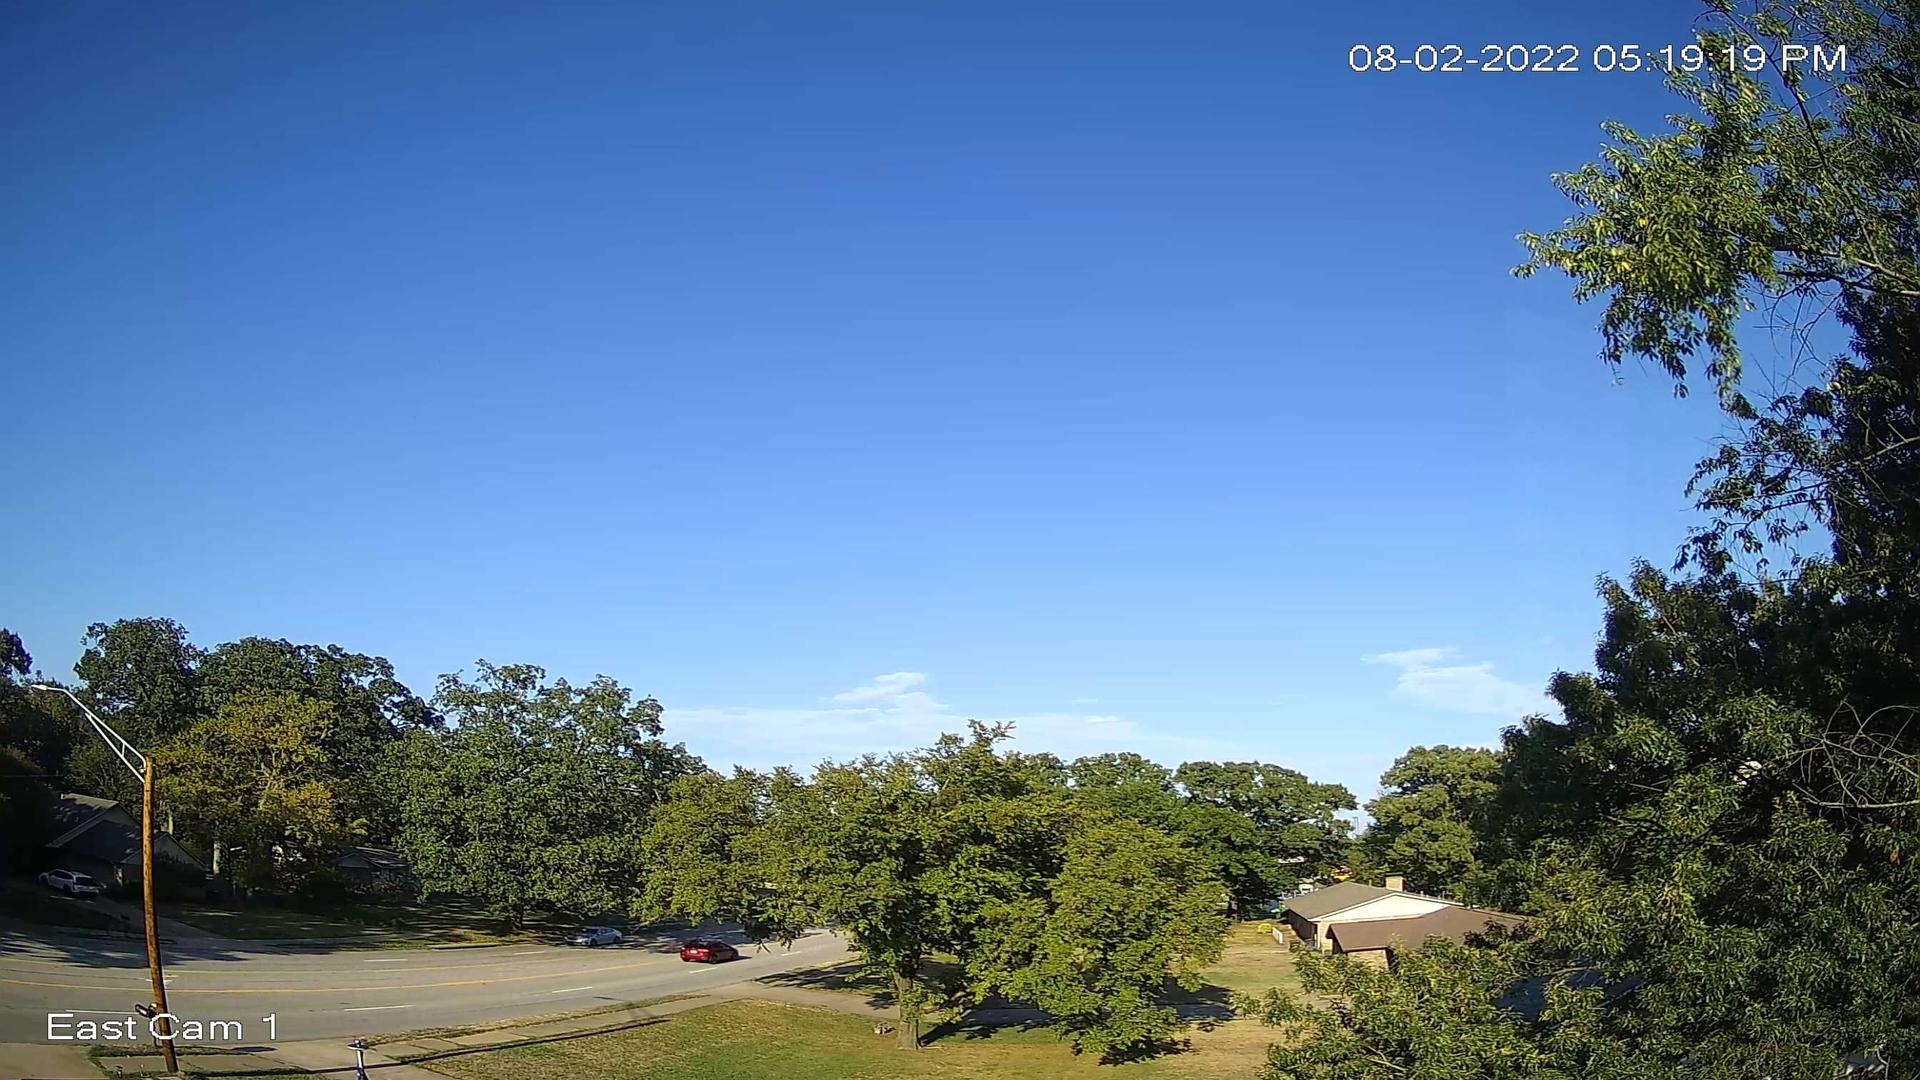 Webcam Massard › North-East: Ft Smith AR: Facing North Ea